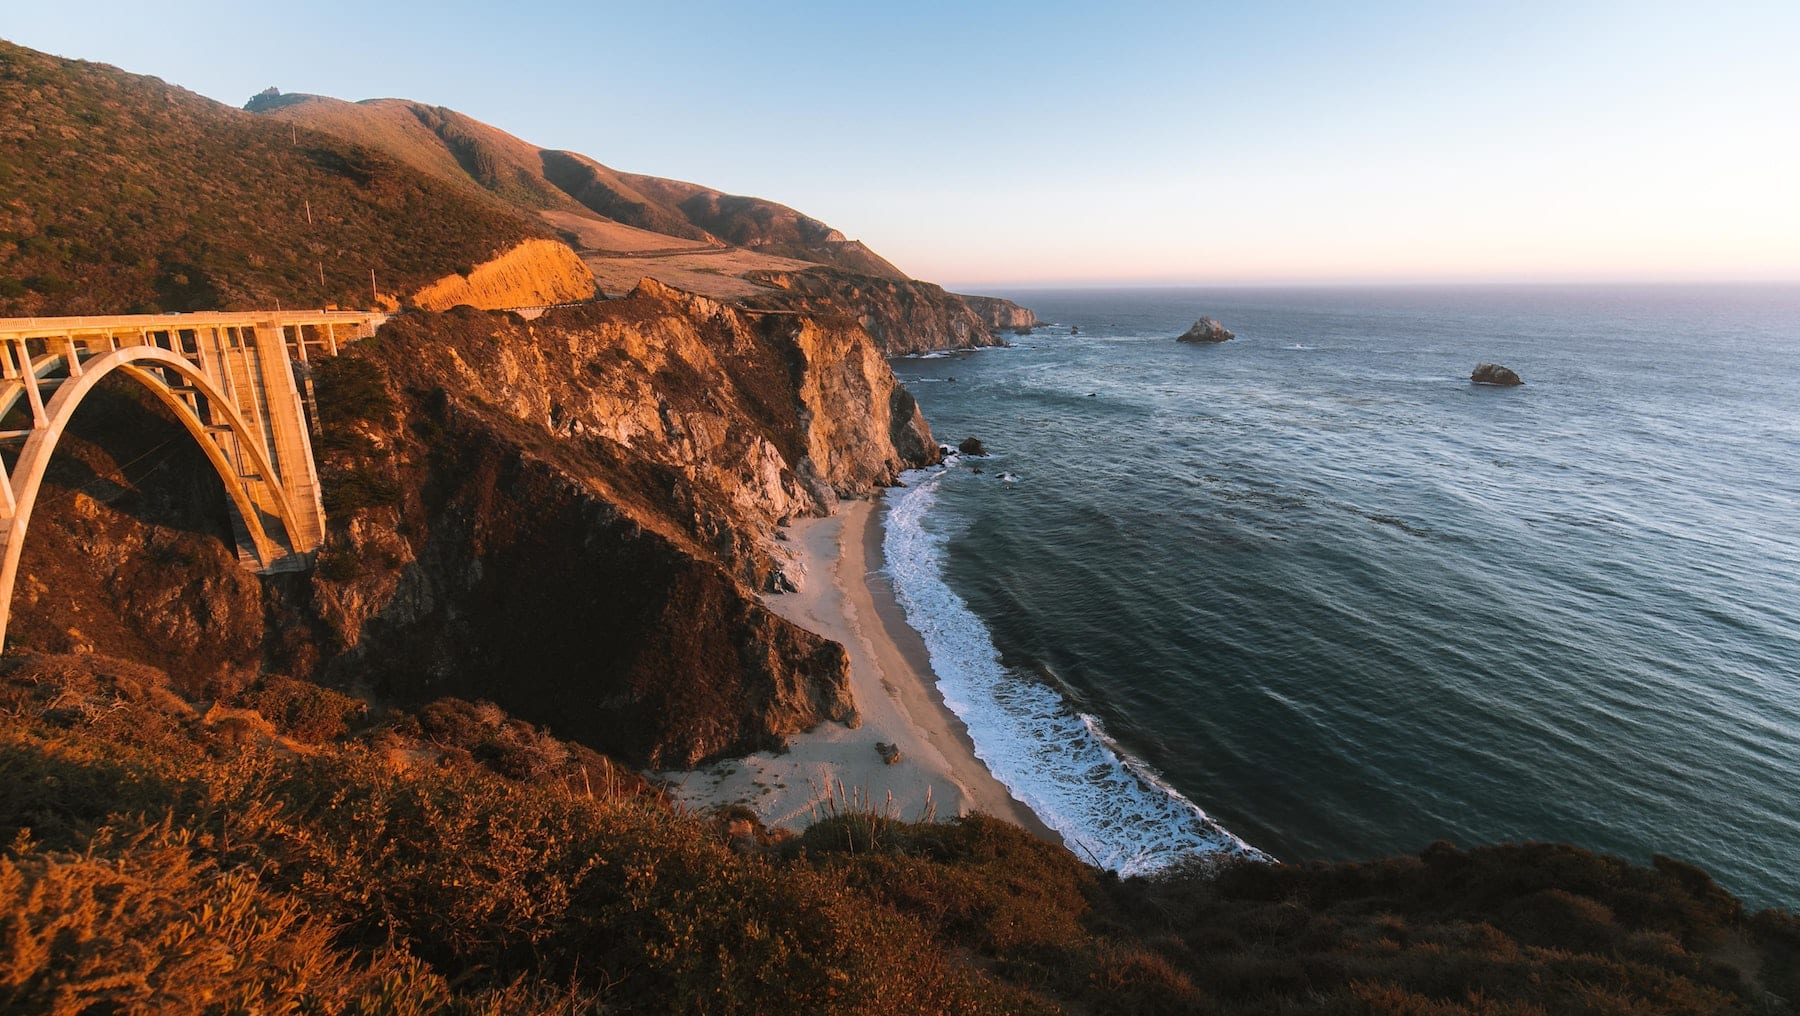 Endangered Travel Destinations in California 2020